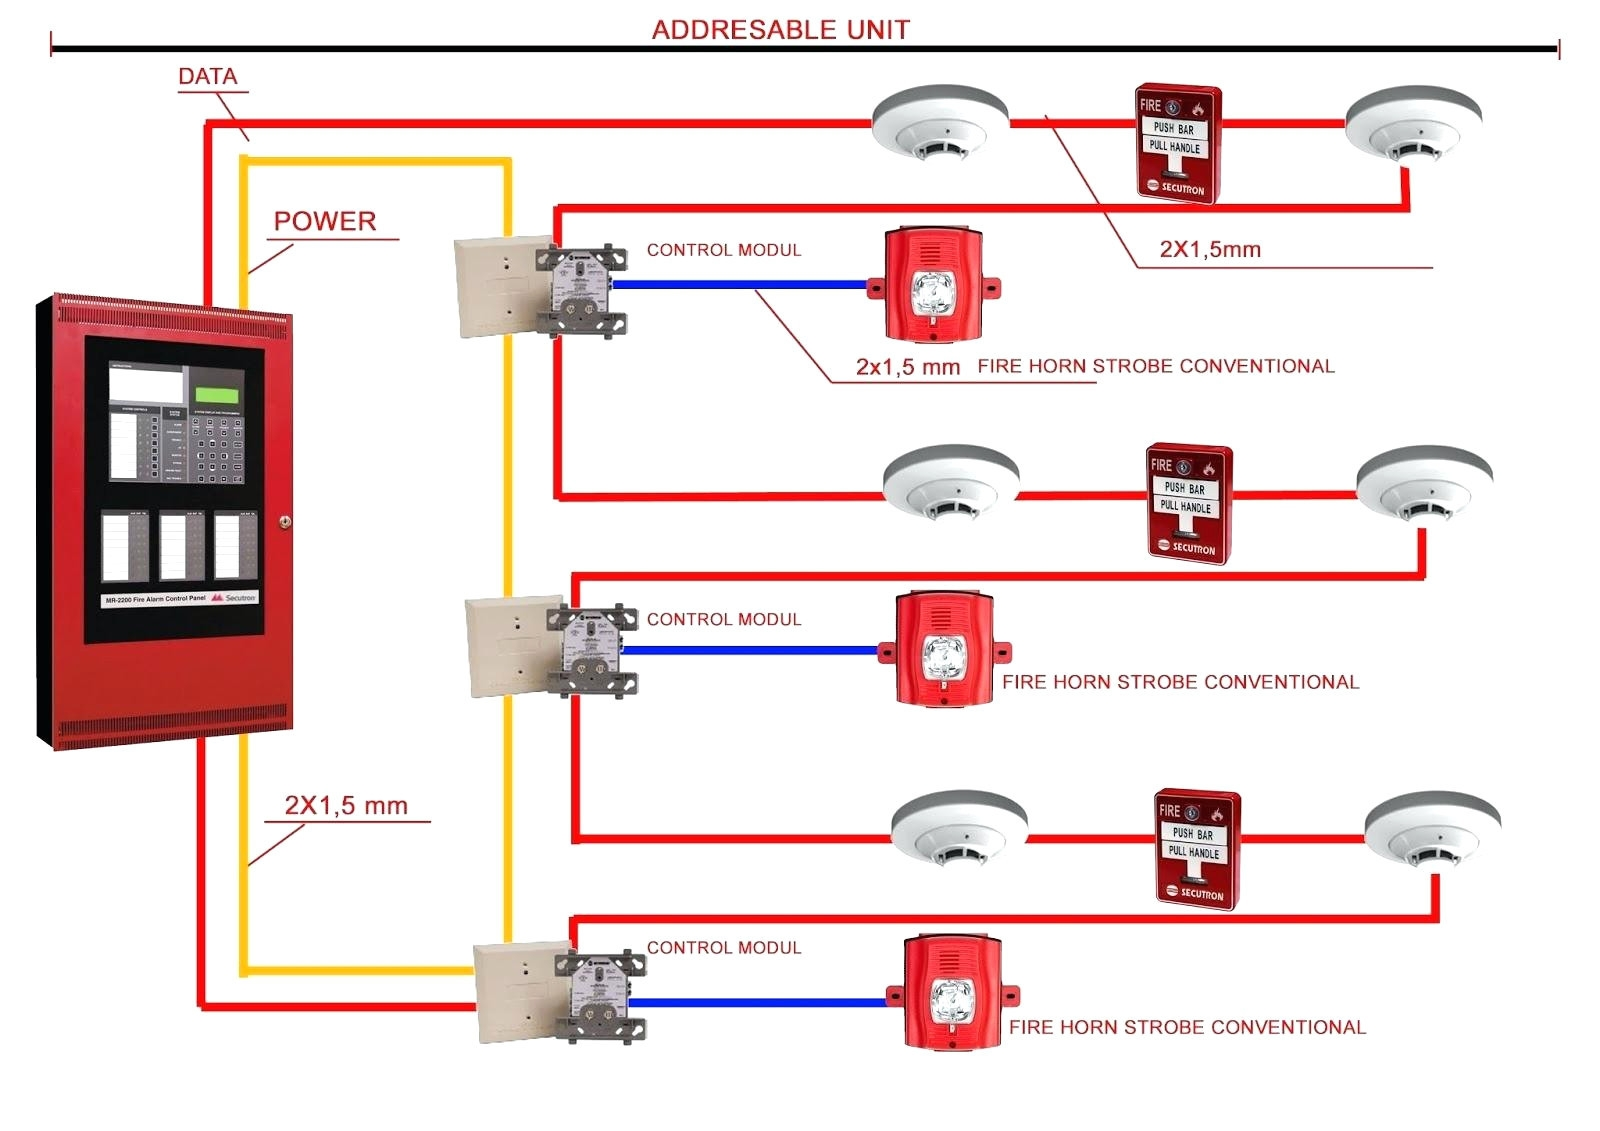 Industrial Fire Alarm Wiring | Wiring Diagram Liries on troubleshooting diagrams, industrial tools, industrial electrical diagrams, industrial ventilation diagrams, industrial design diagrams, garage door opener control diagrams, industrial air conditioning, plc diagrams, industrial pump diagrams, power distribution diagrams, data diagrams, industrial fan diagram, fluid power diagrams,